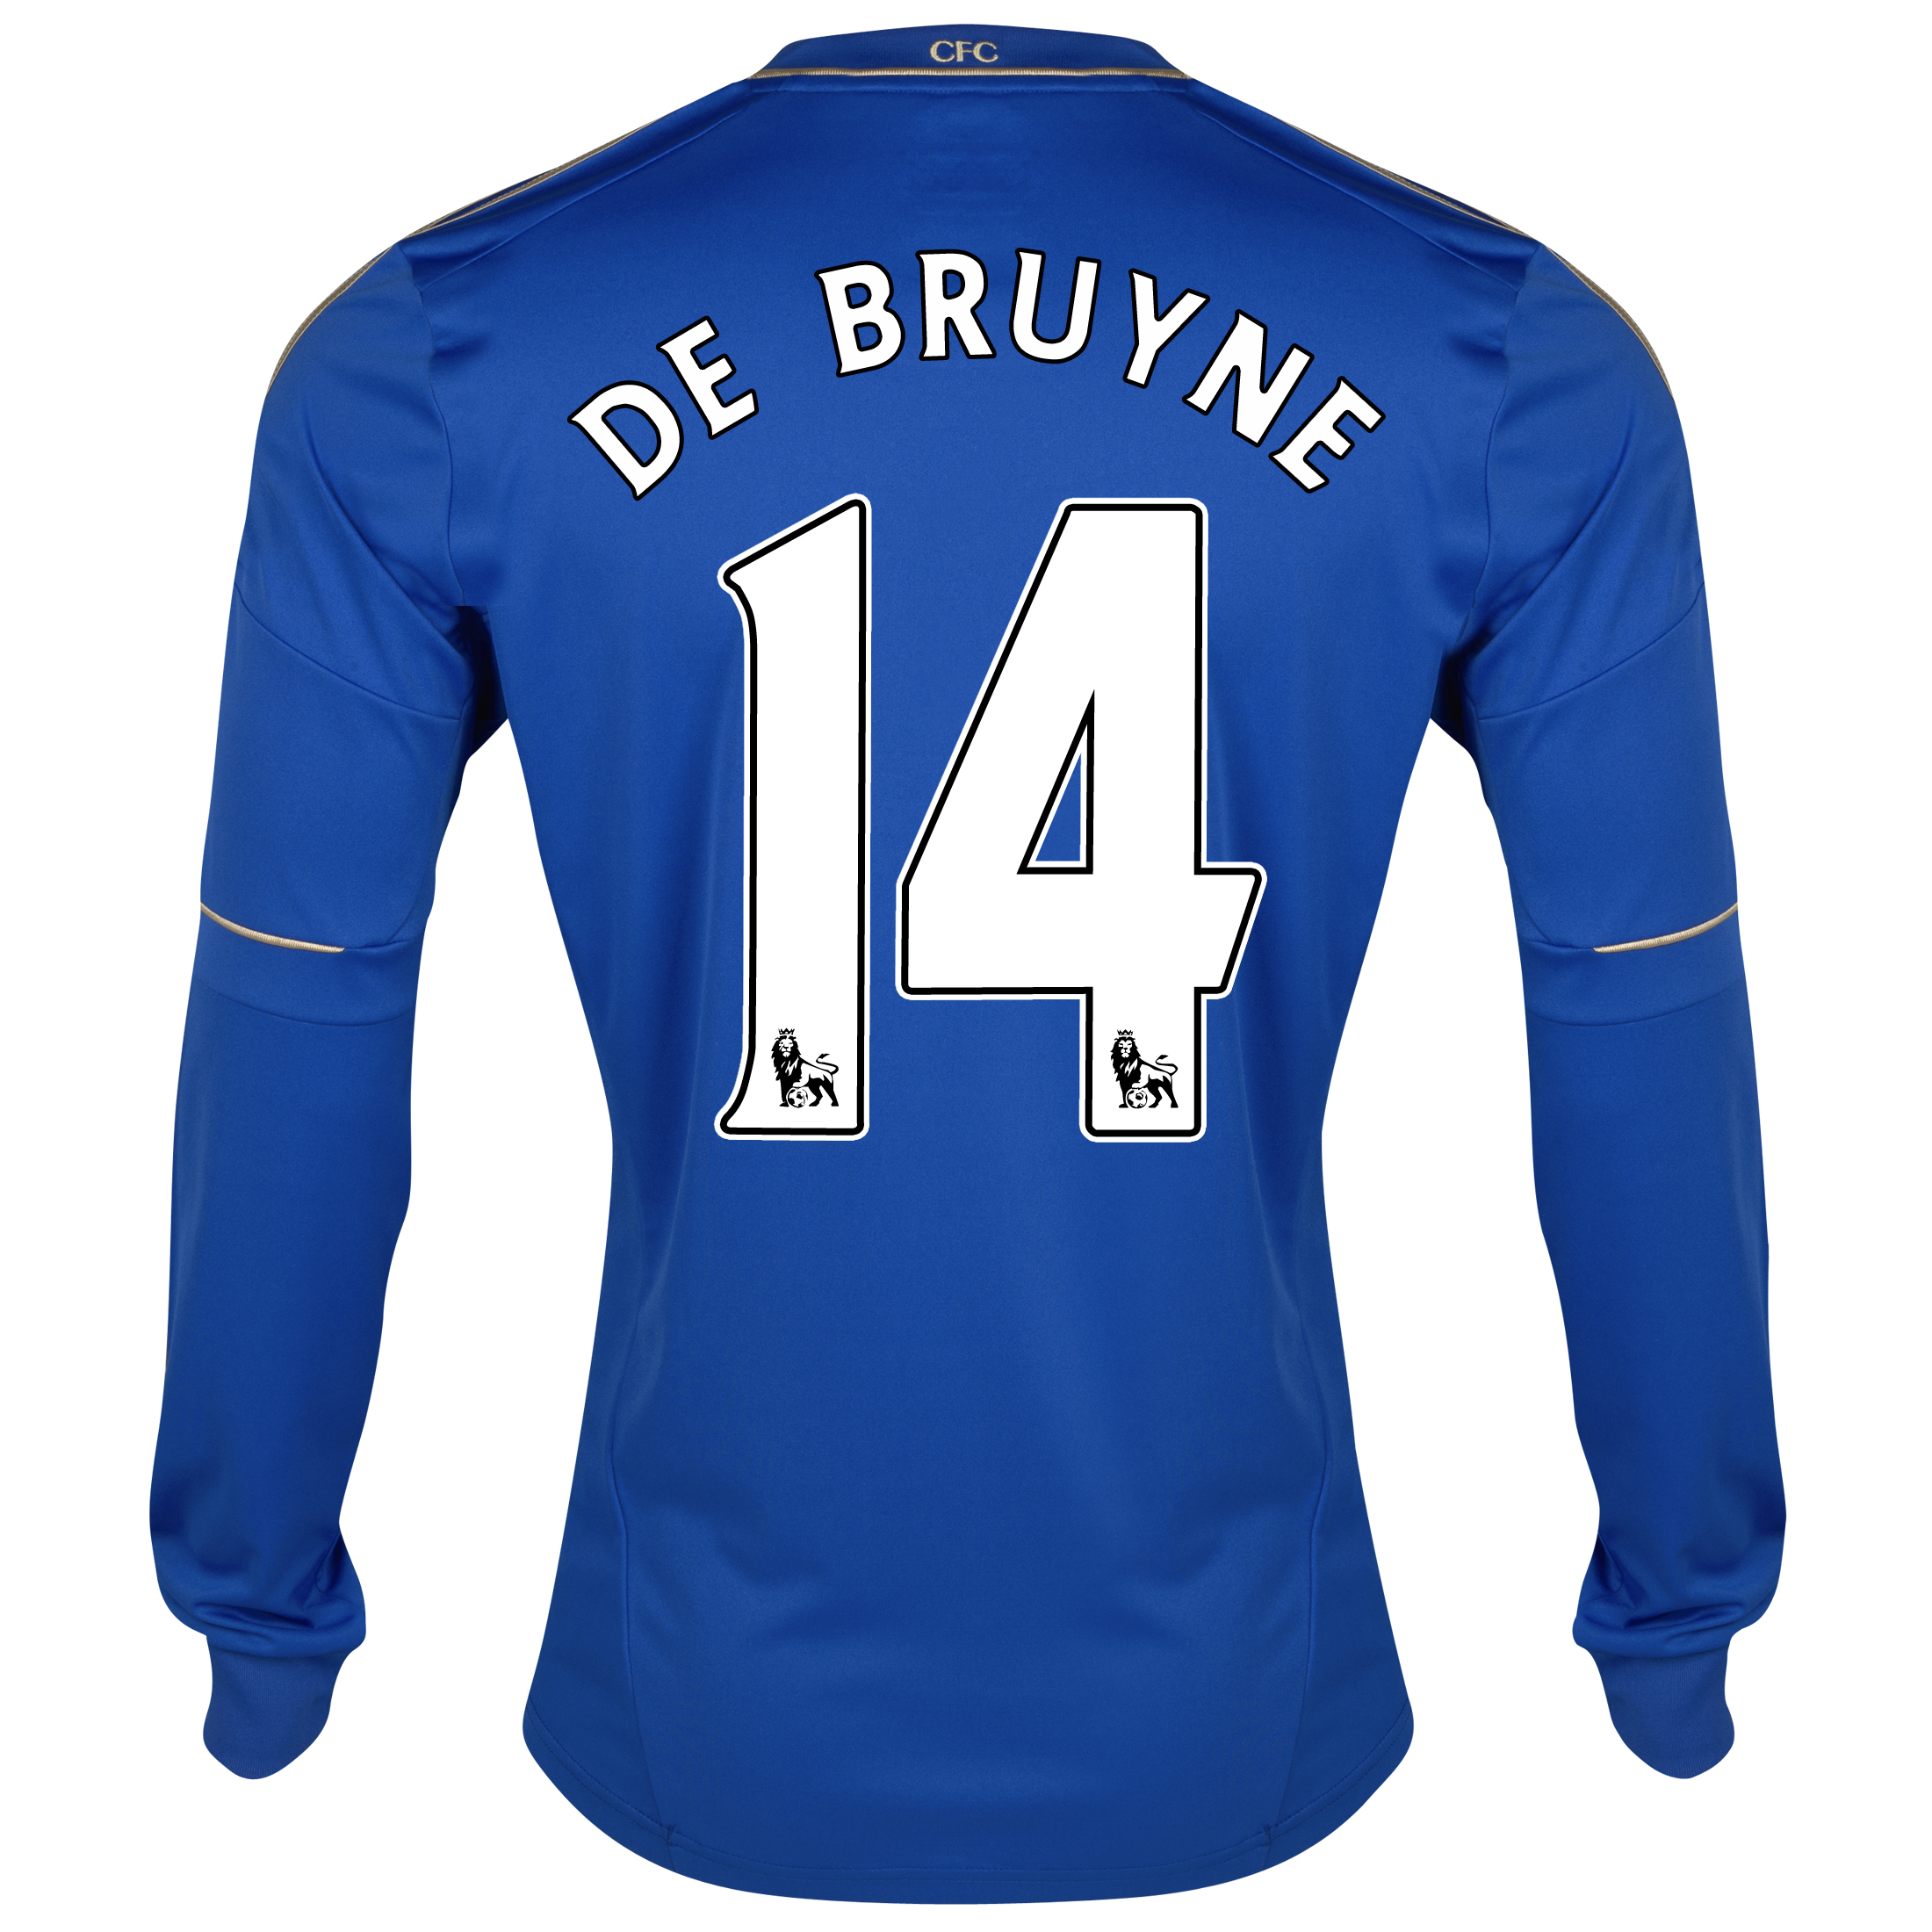 Chelsea Home Shirt 2012/13 - Long Sleeved - Youths with De Bruyne 14 printing